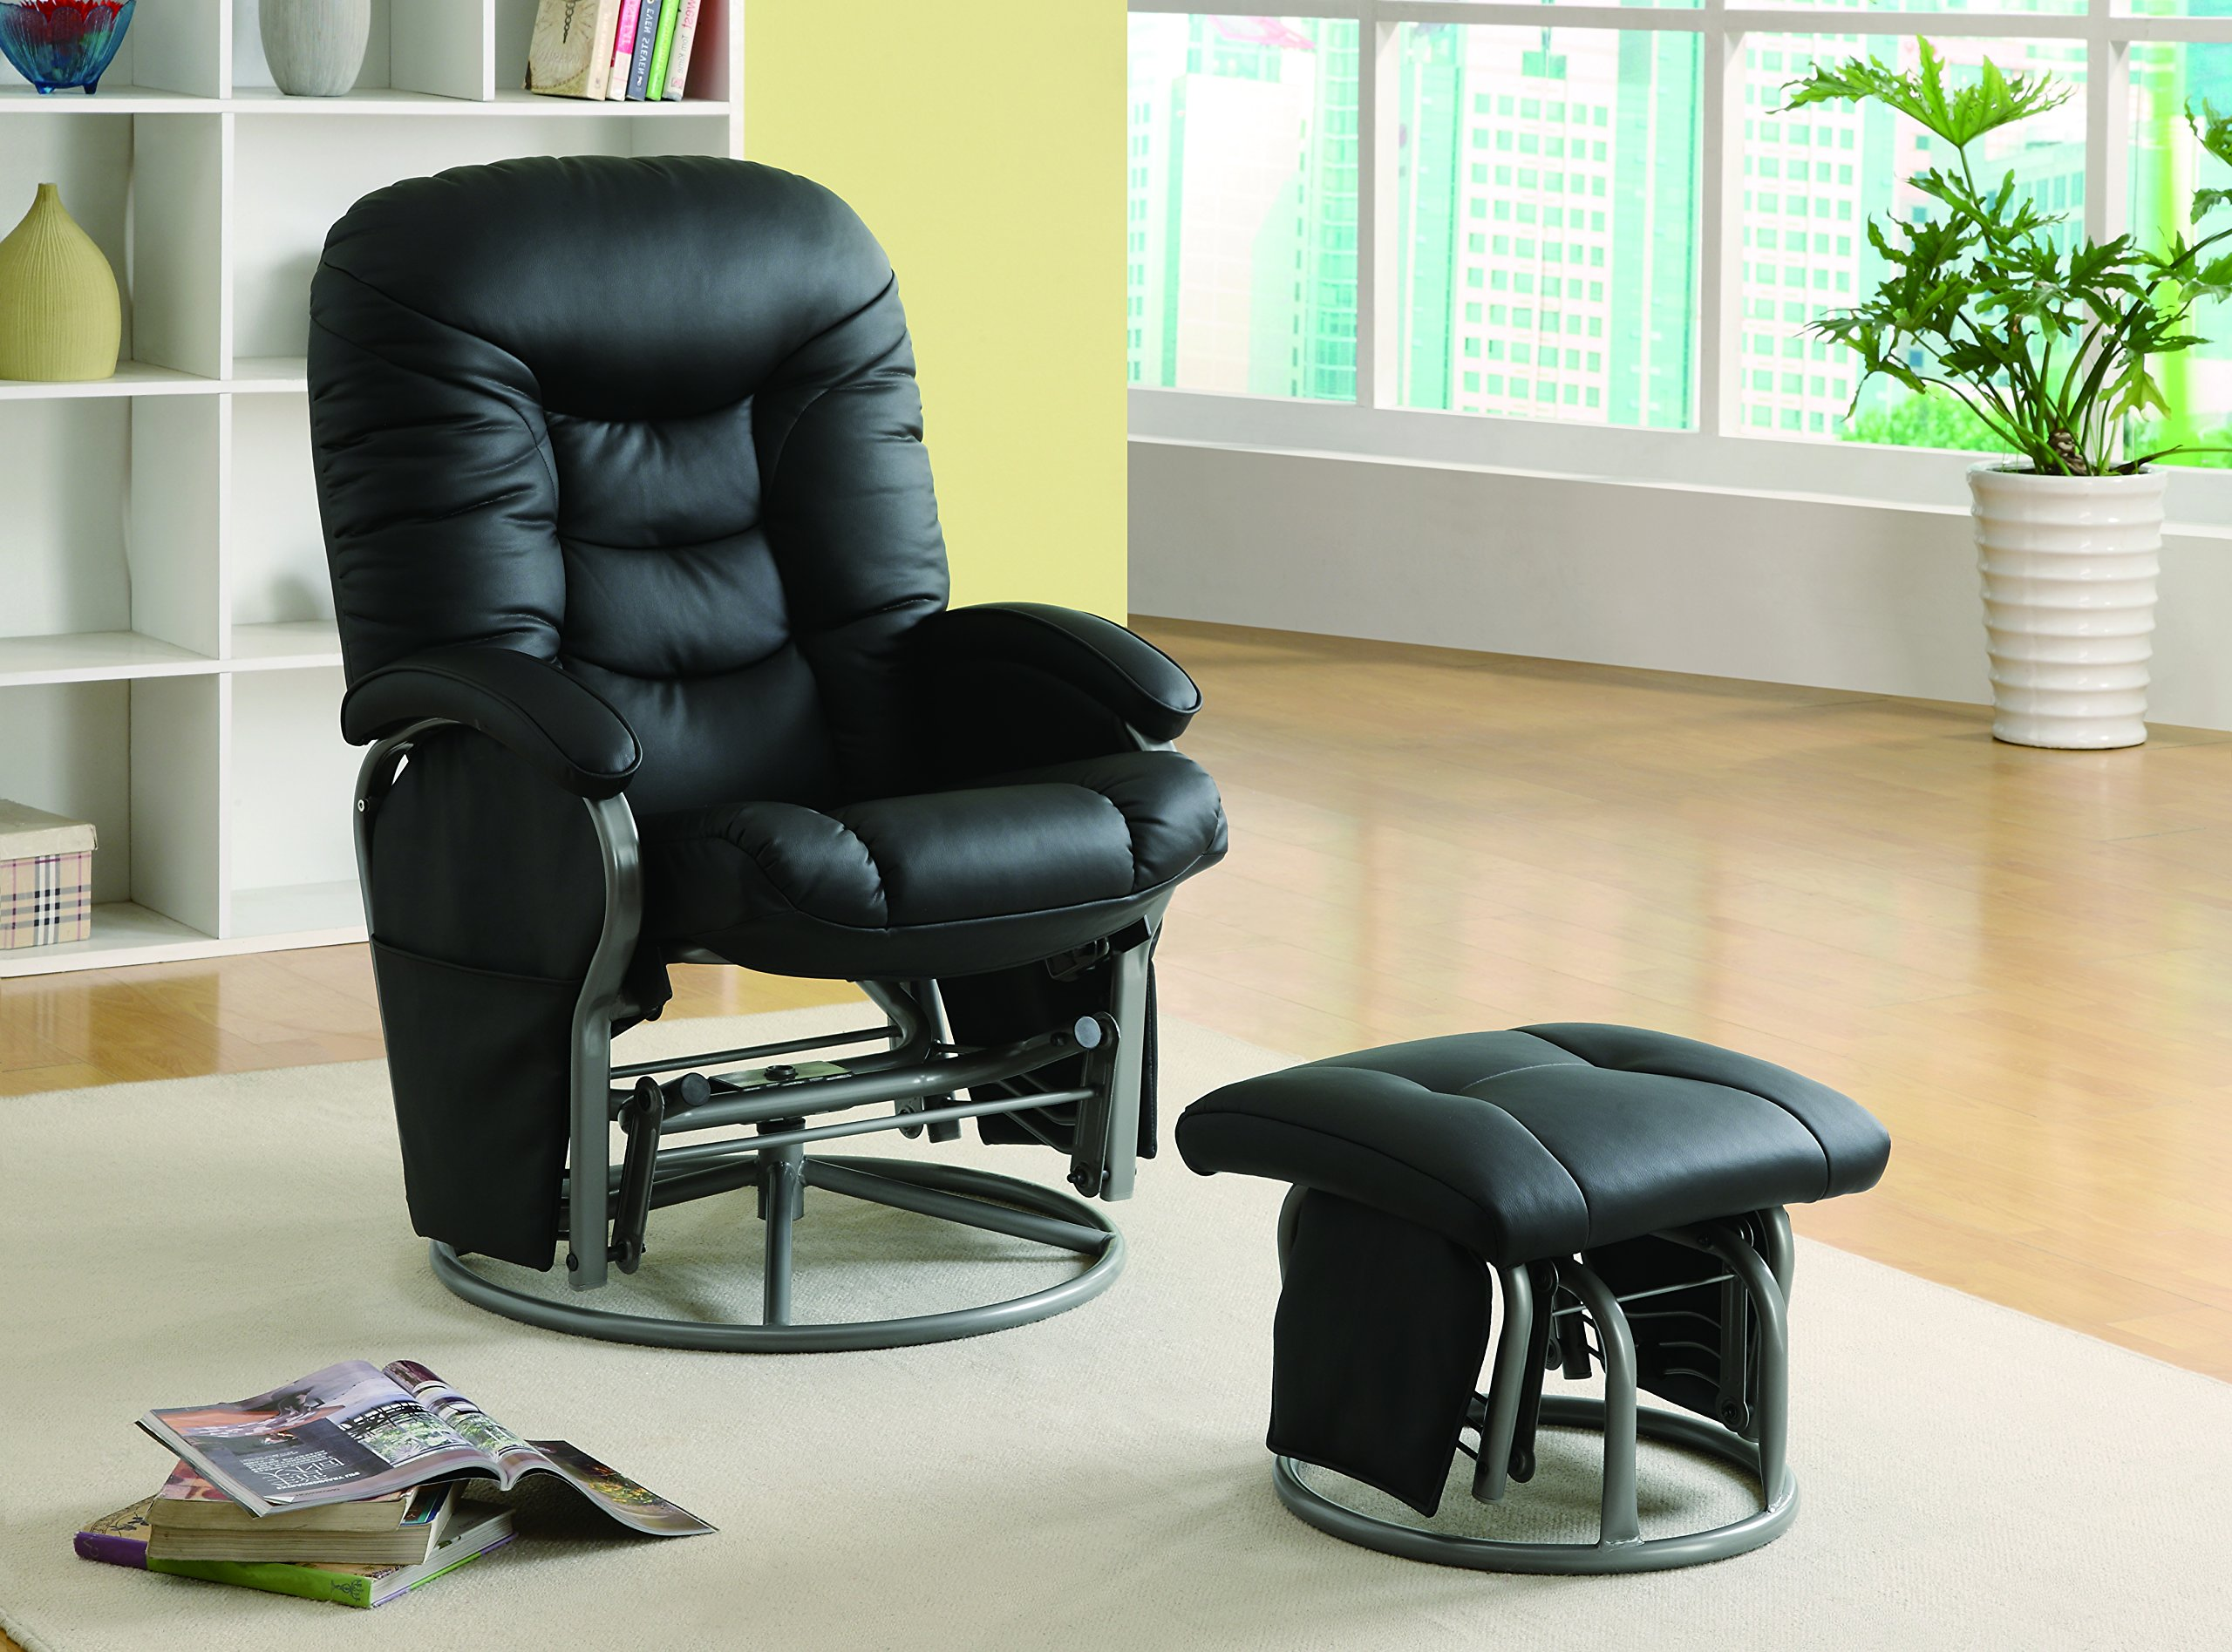 Leatherette Glider Recliner with Matching Ottoman Black by Coaster Home Furnishings